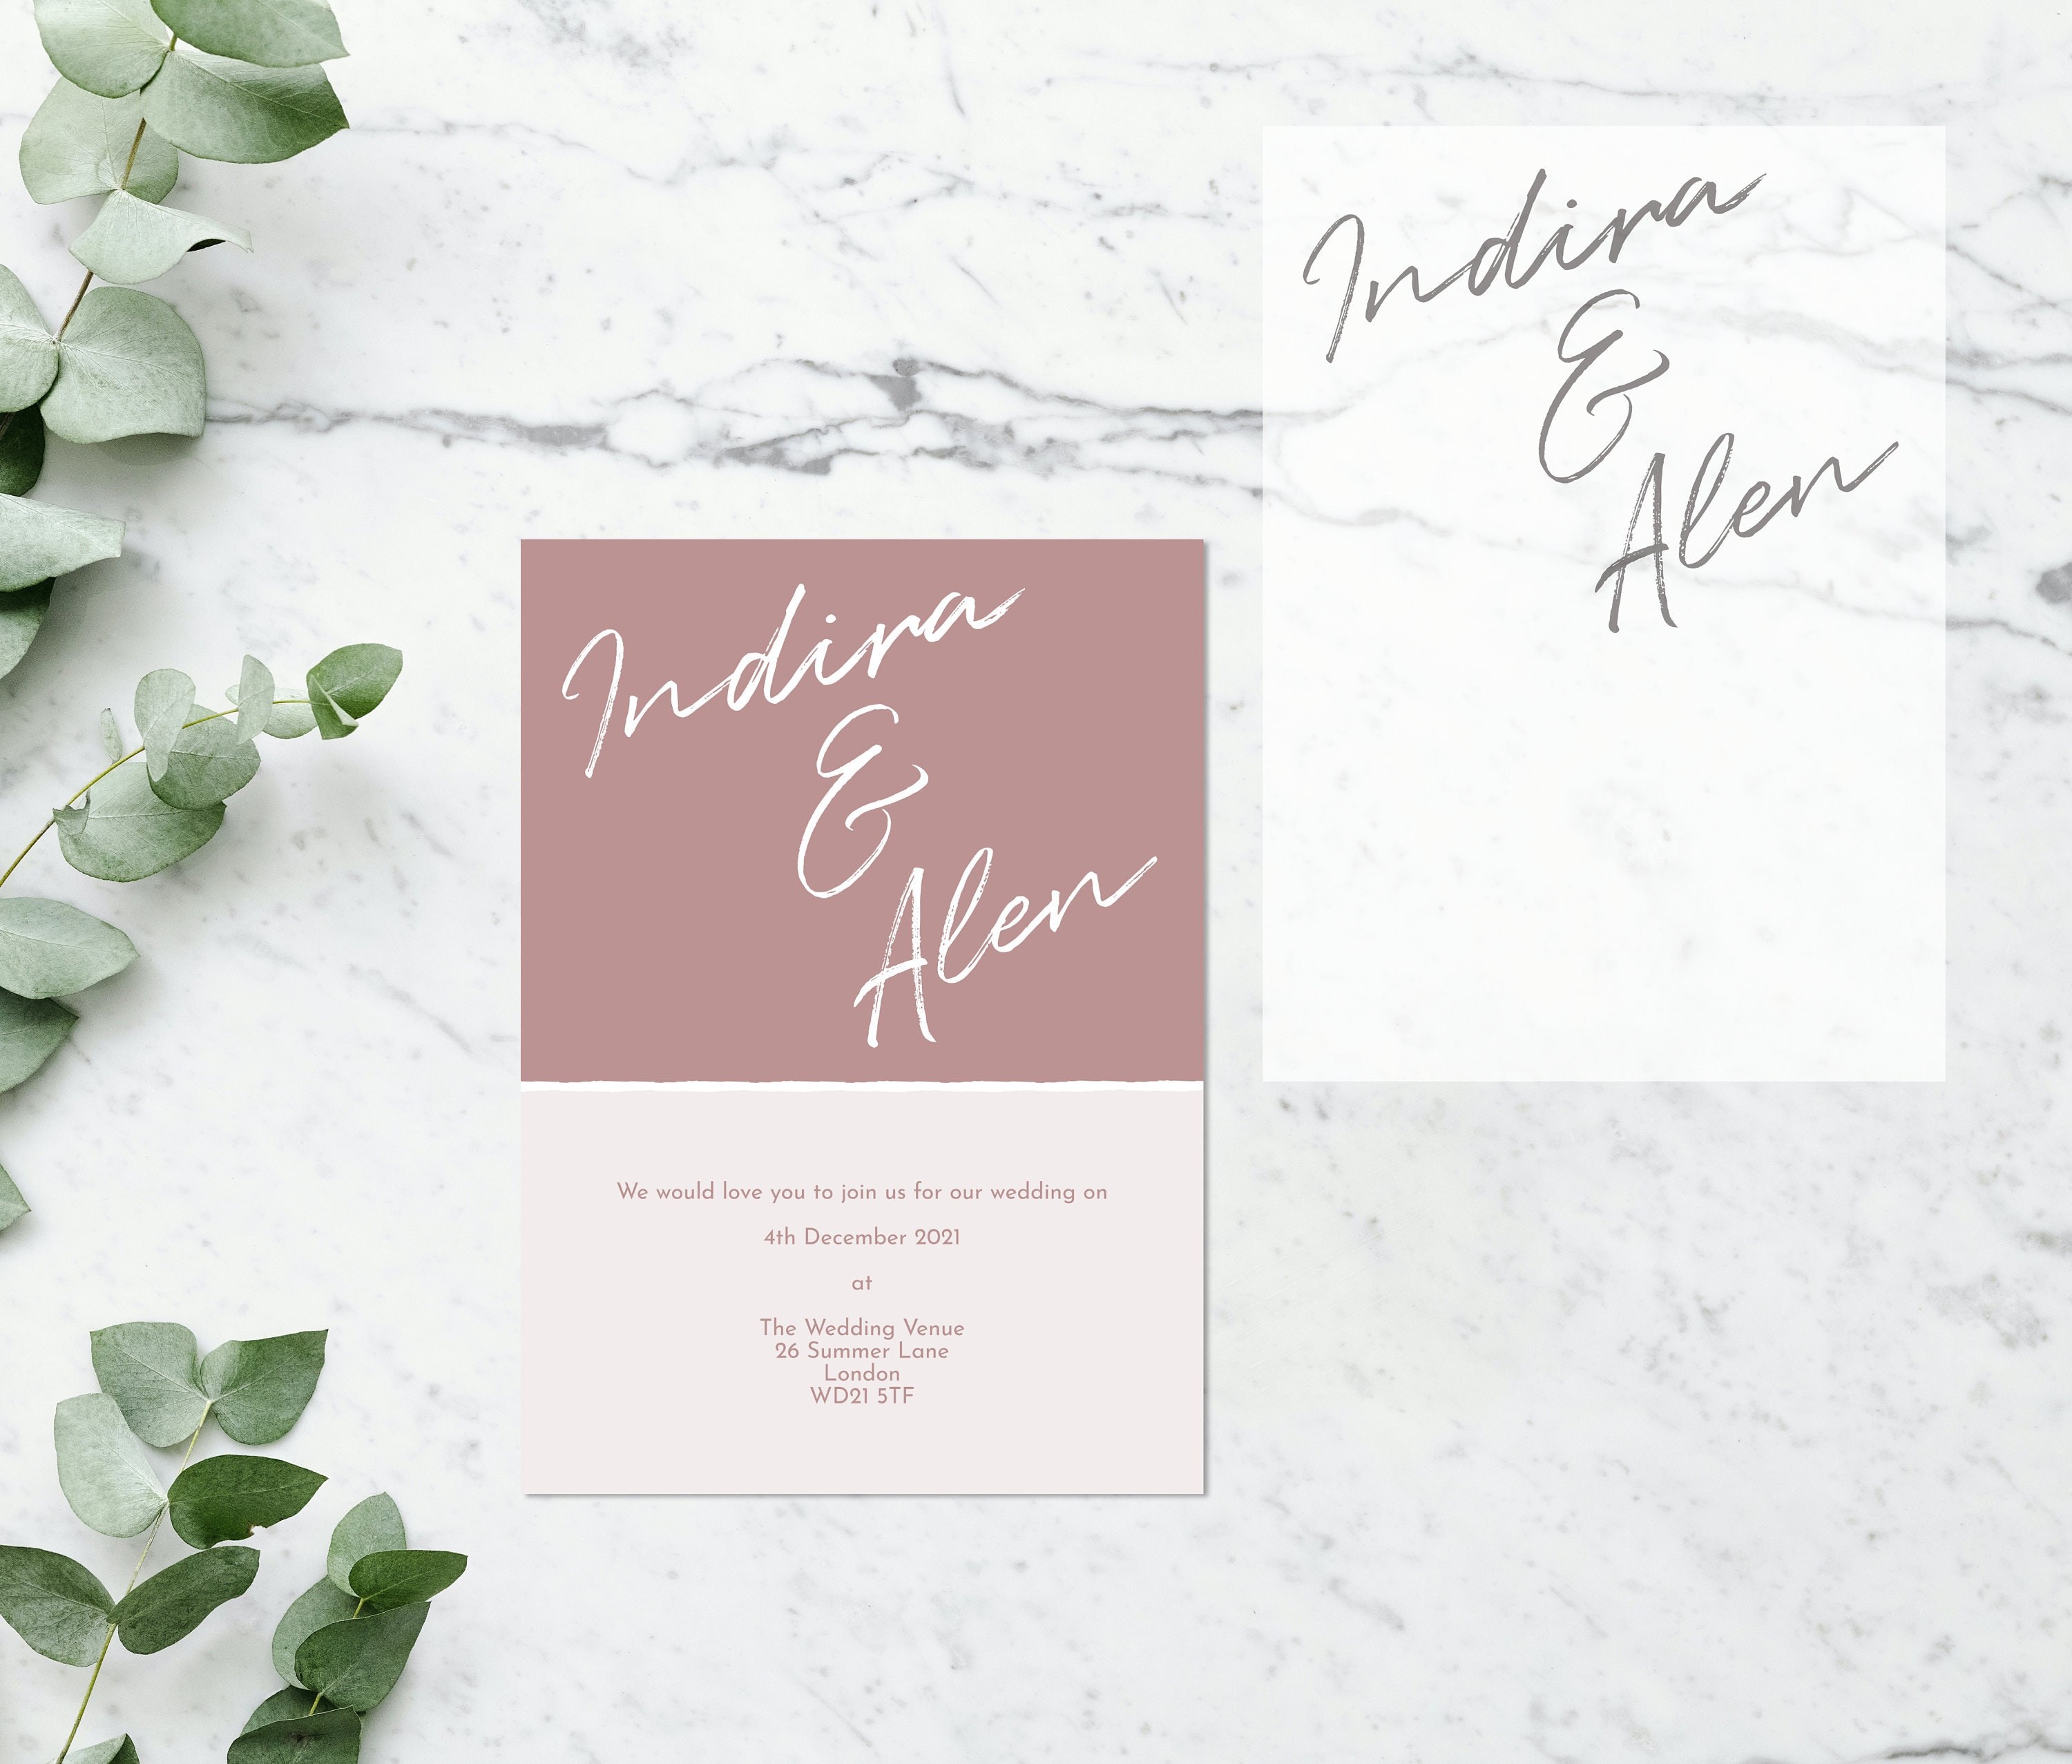 Flat lay photograph showing a blush pink wedding invitation and the vellum overlay sheet separately.